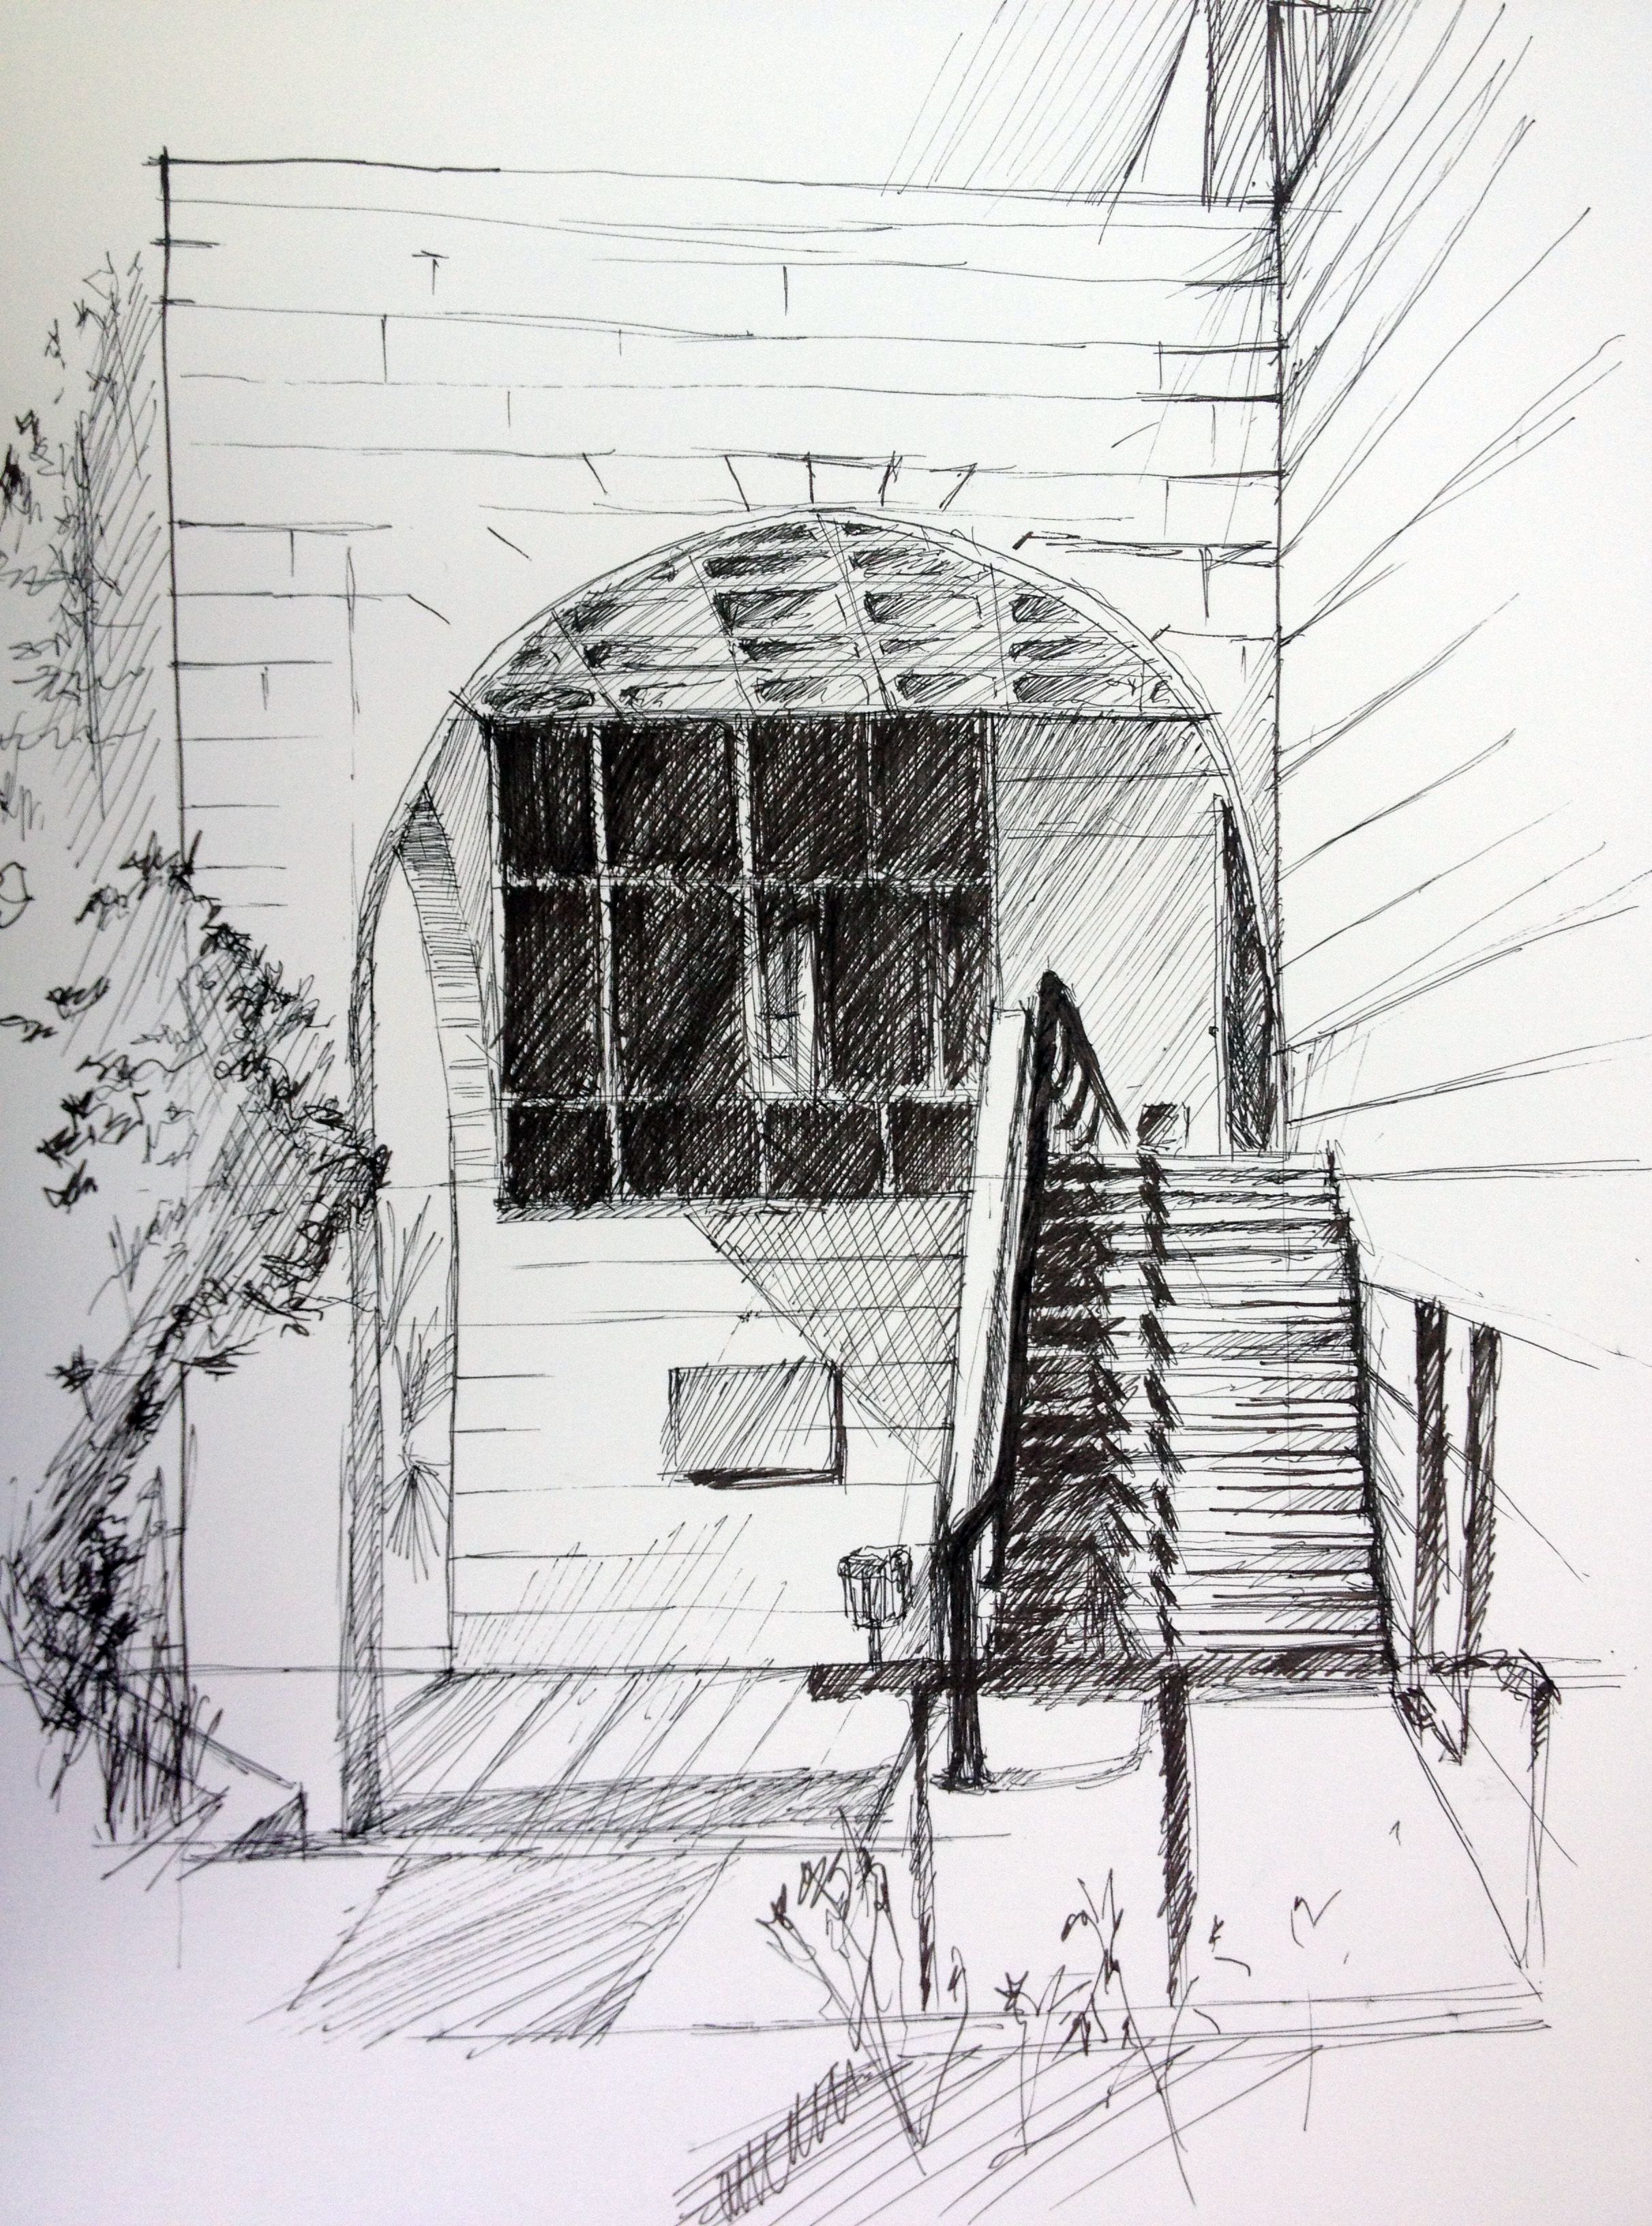 A sketch by mohammad samarah visual communication 1 for Cheap architectural drawings